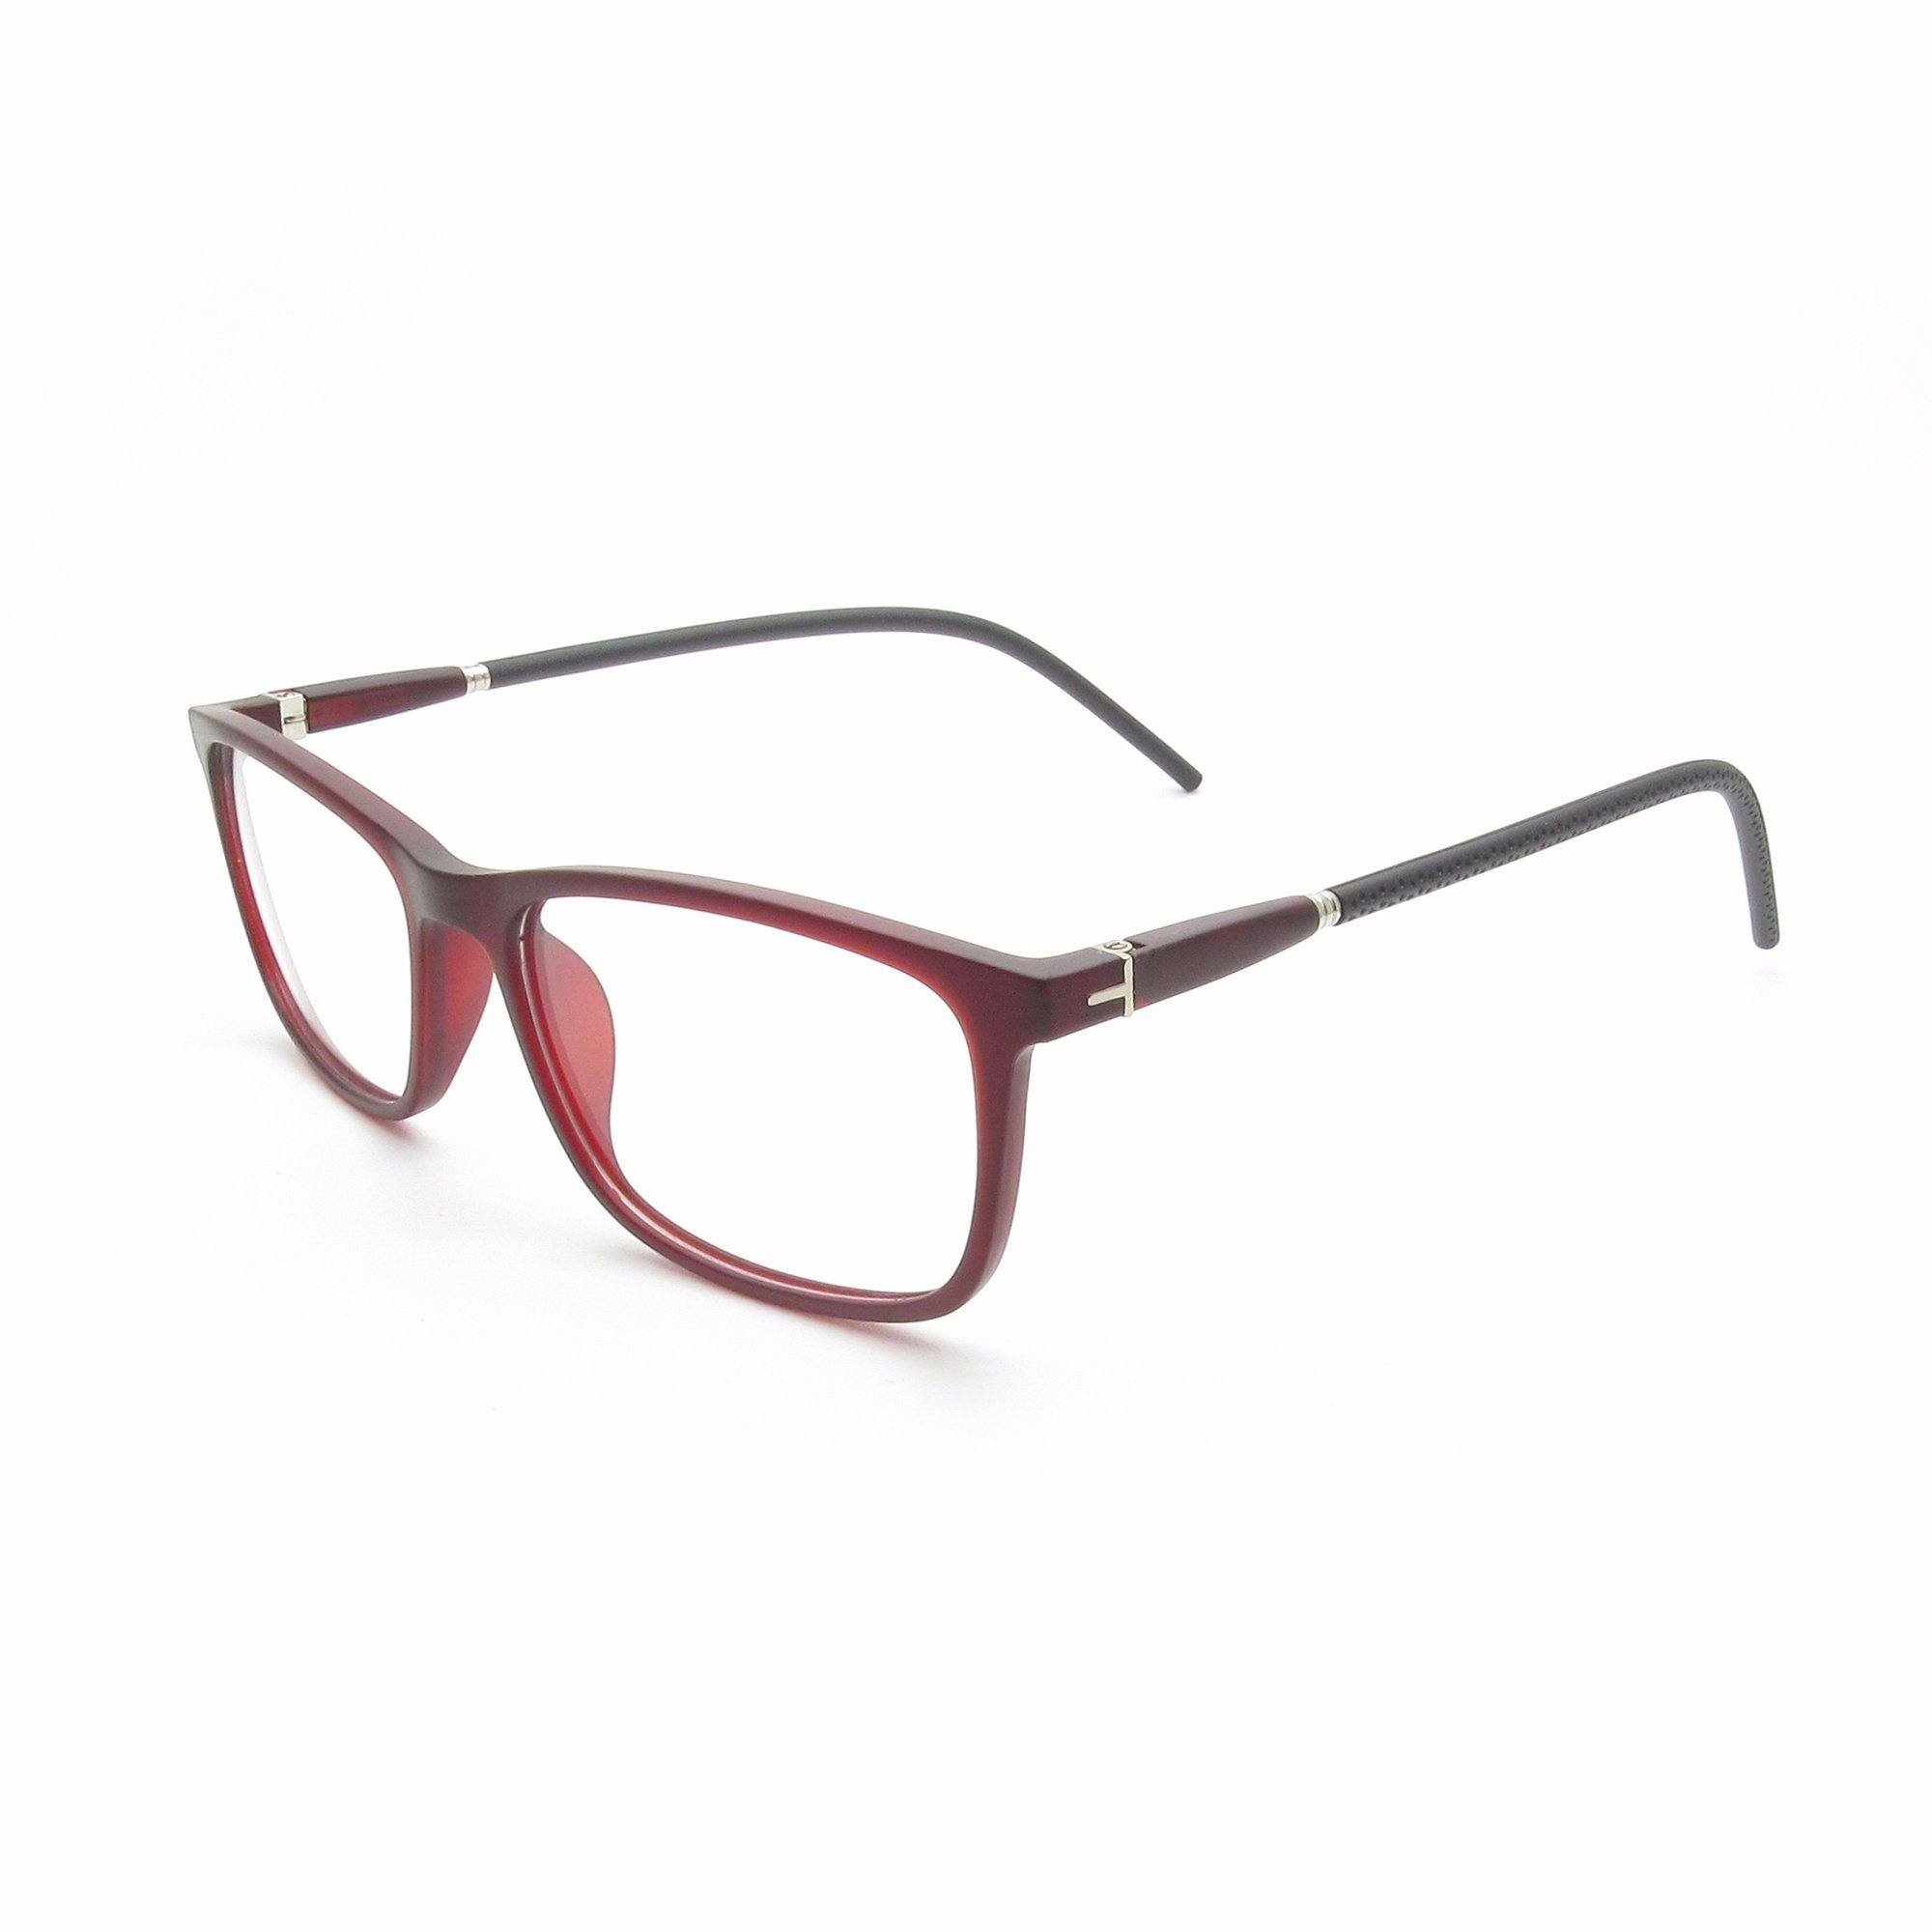 New Design Mz0814 Square Cheap Stainless Steel Reading Eyewear Optical Frames